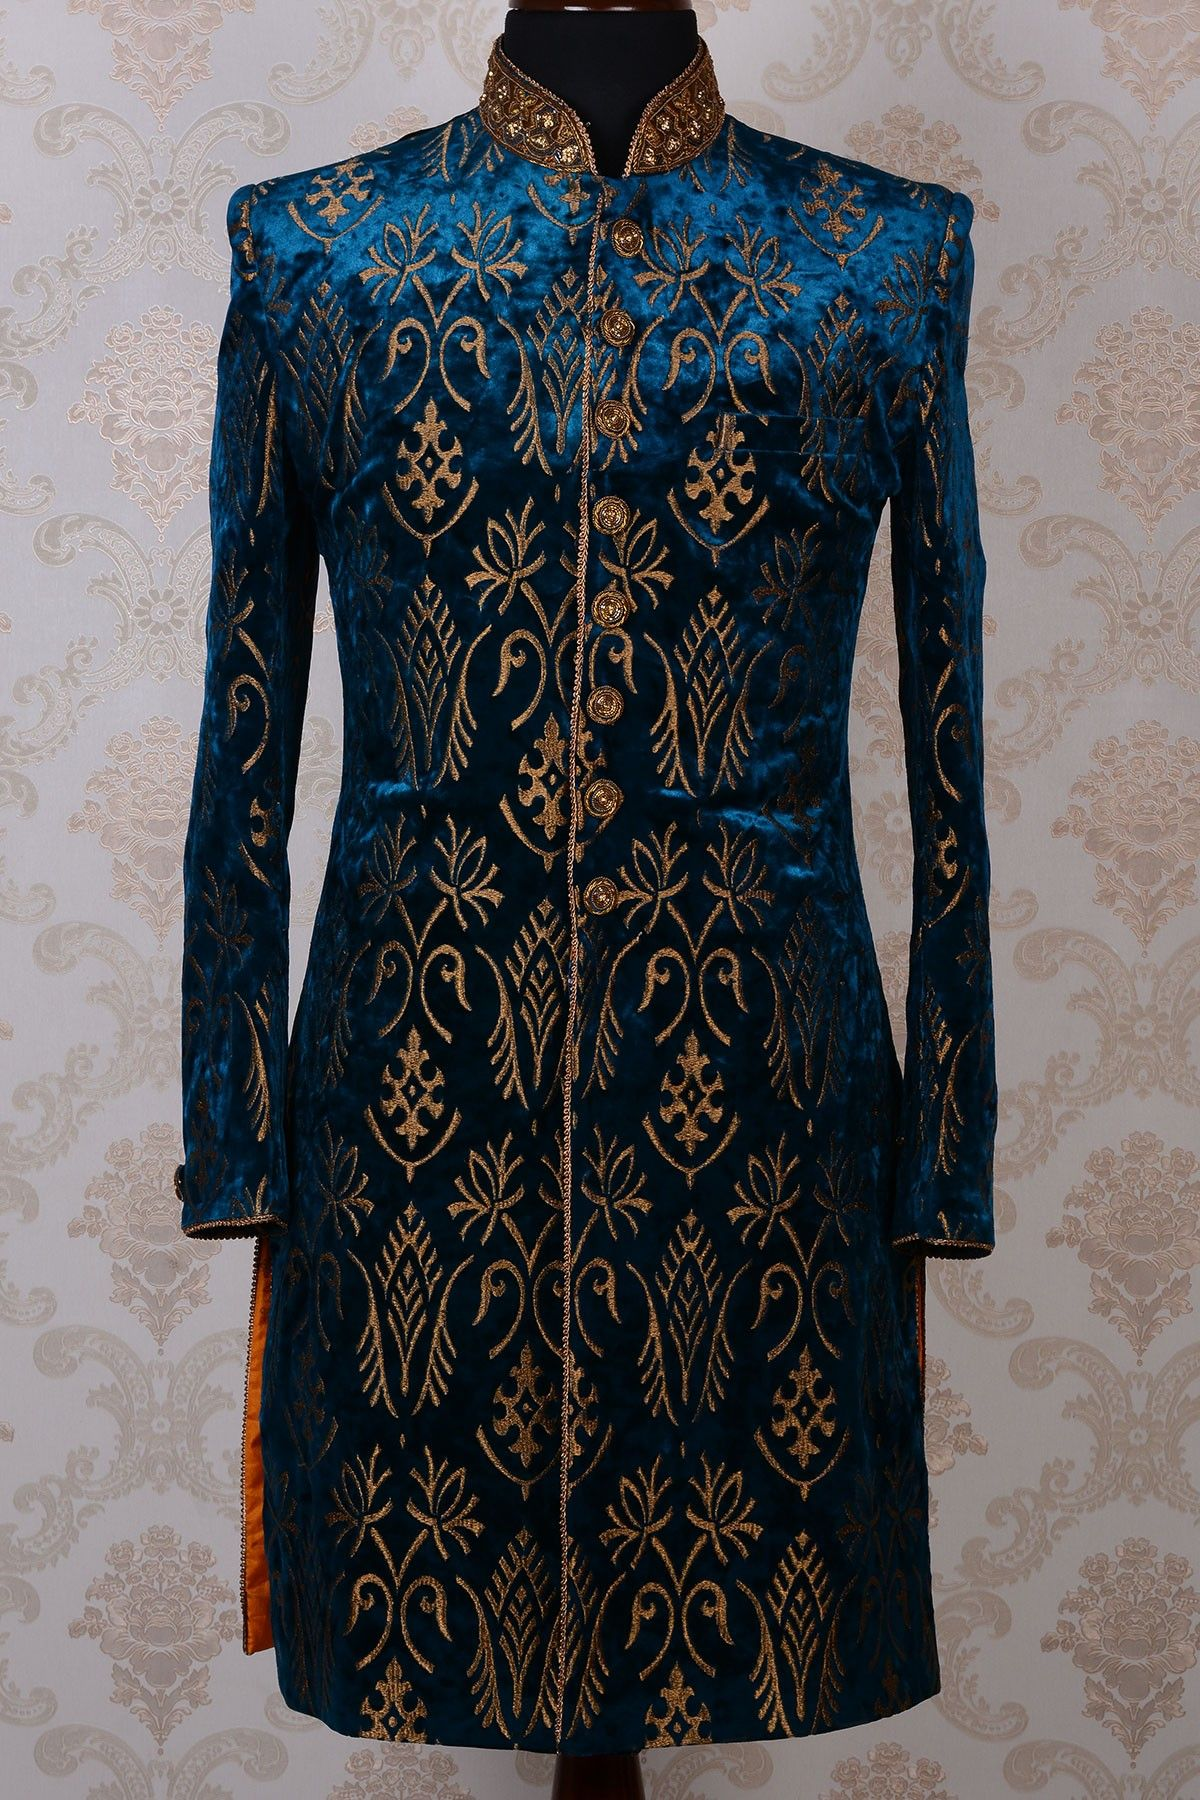 Indo western wedding dress for women  Indo Western SherwaniTeal Blue u GoldZari WorkIW  Sherwani